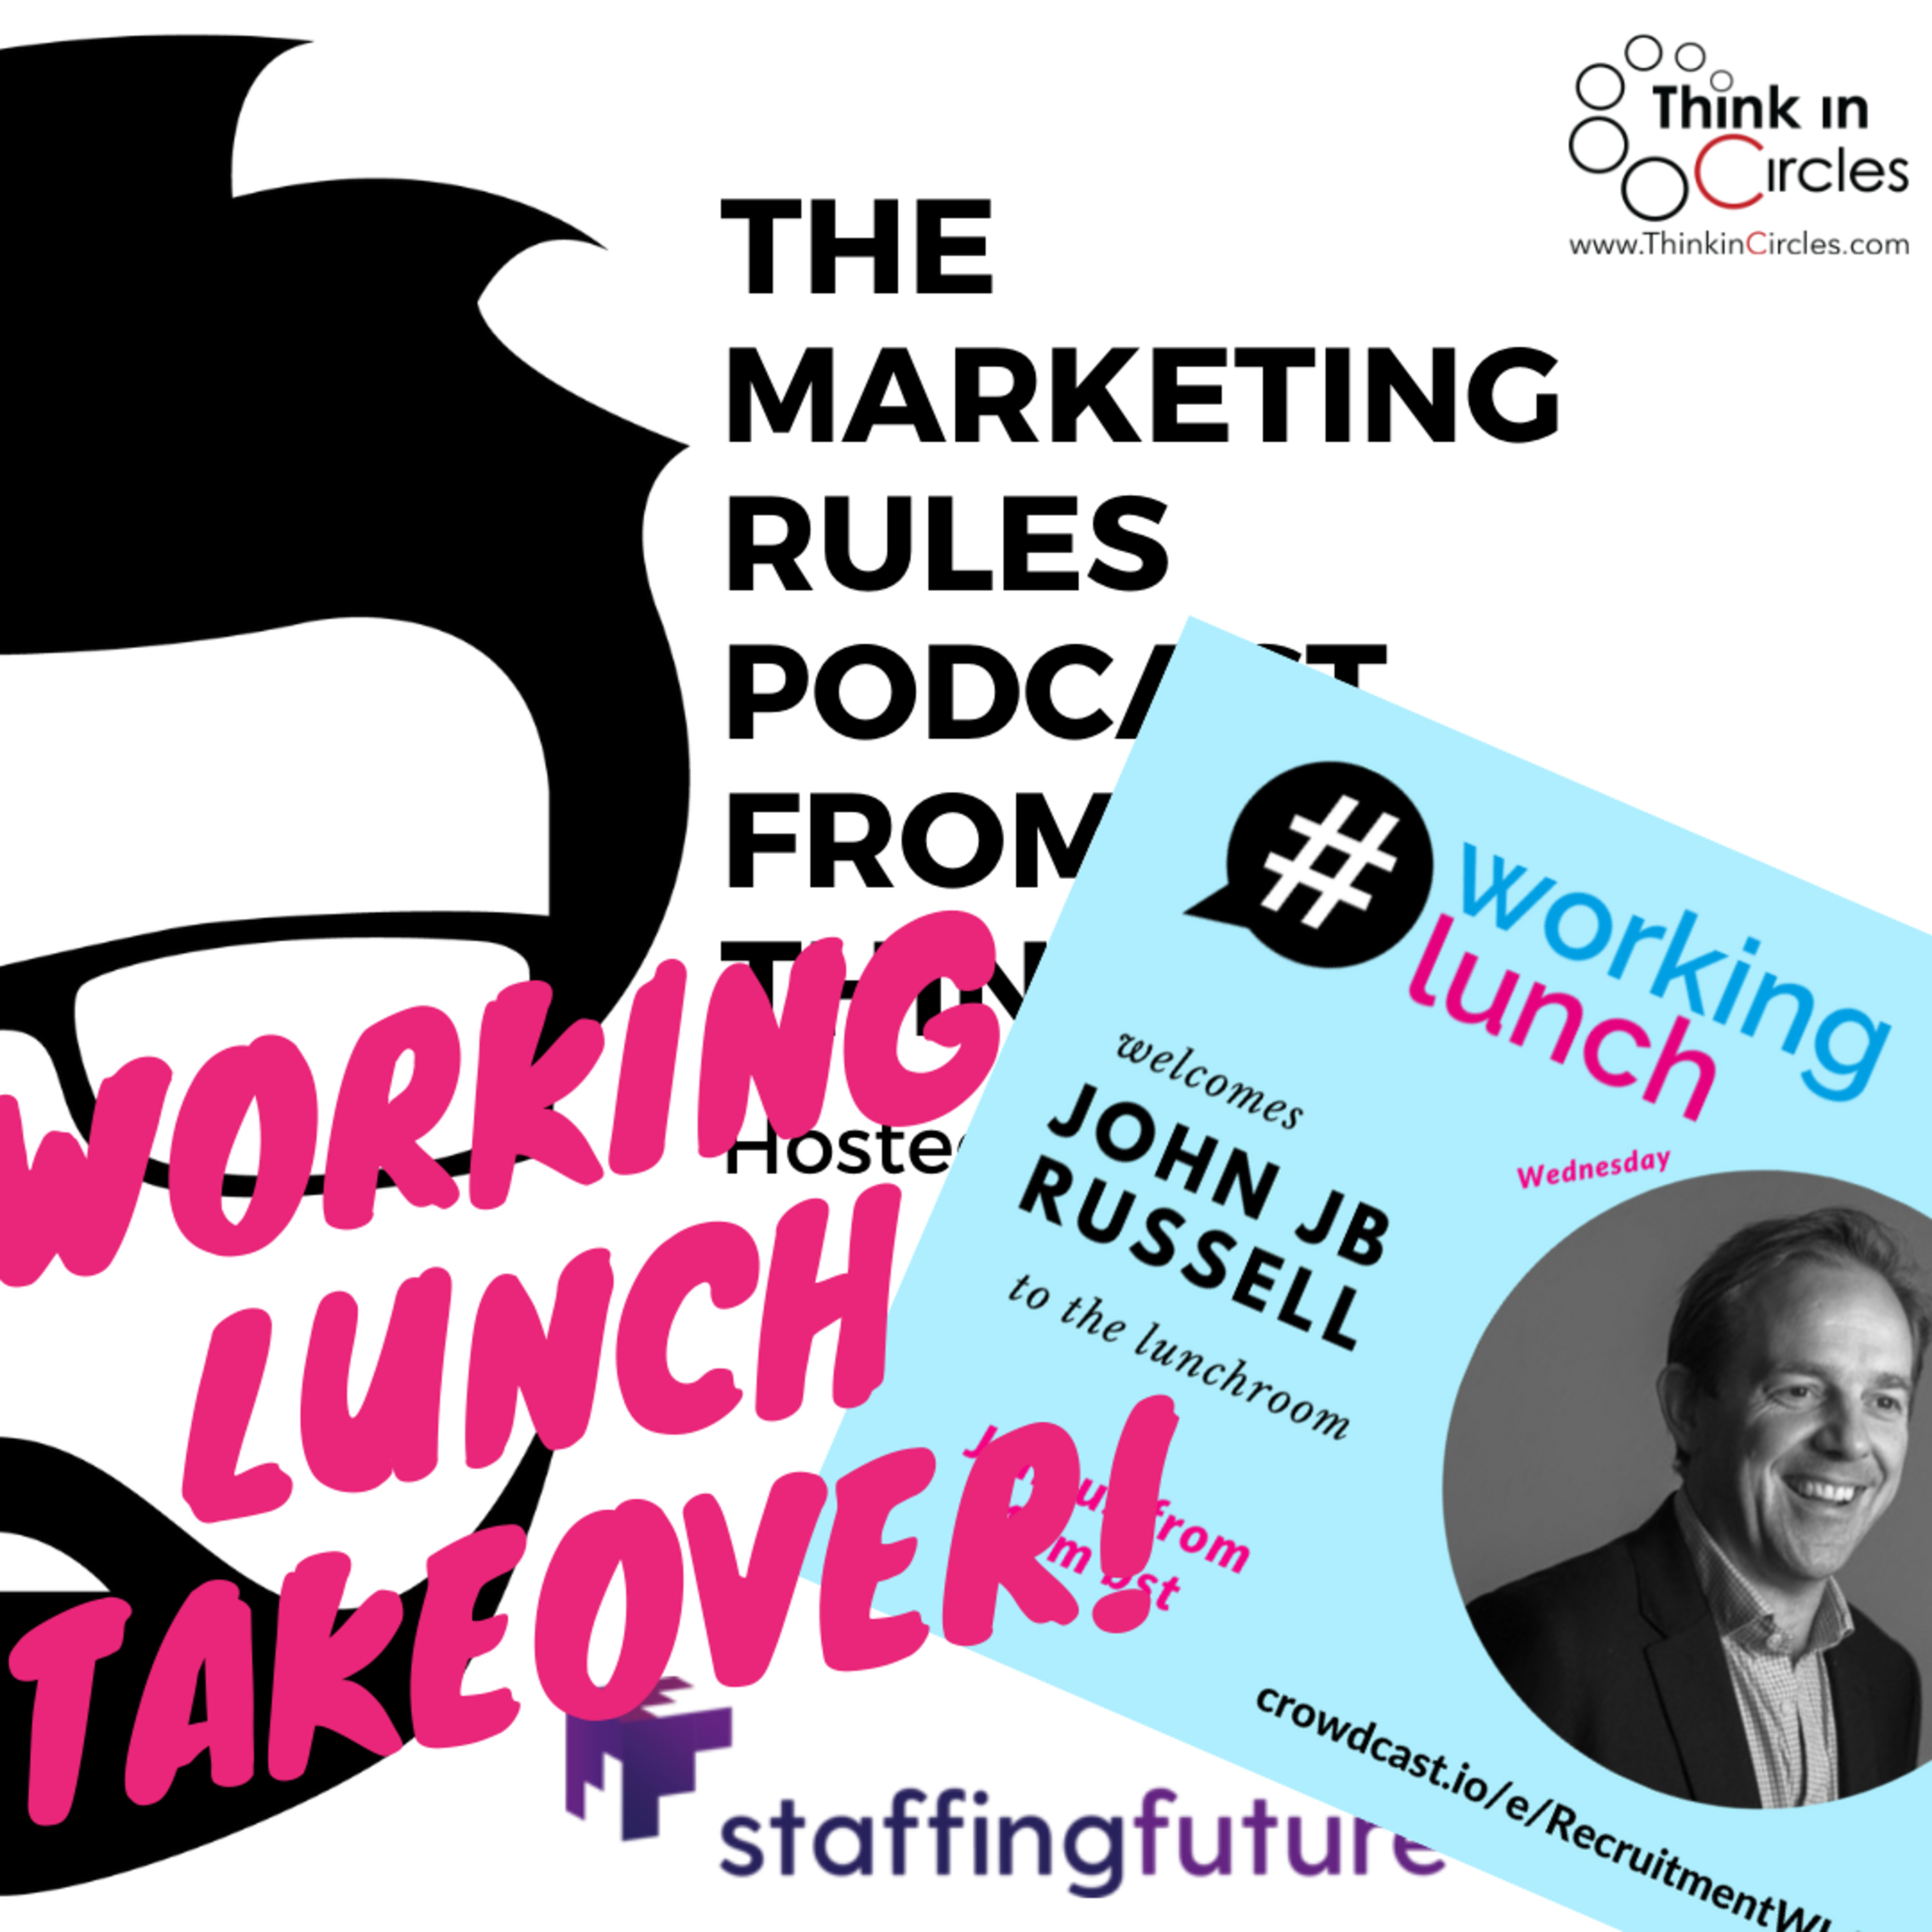 Working Lunch takeover with John JB Russell